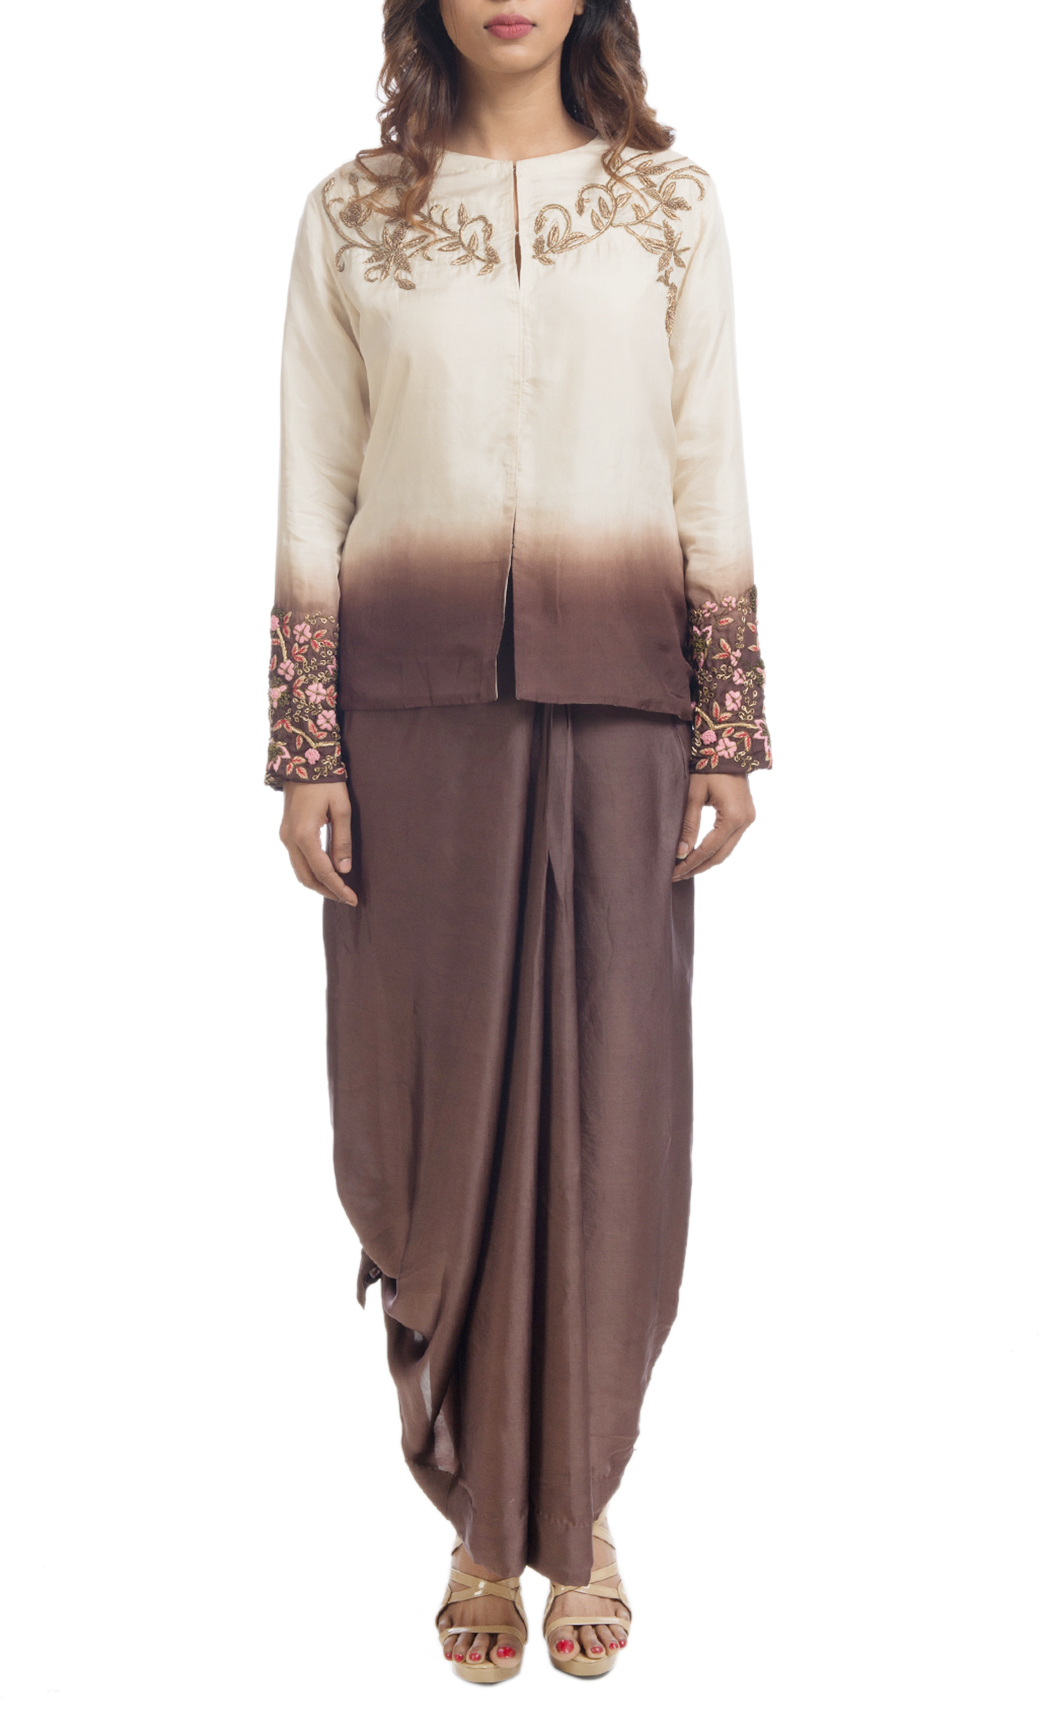 Brown and Off-White Shaded Jacket with a Pleated Skirt